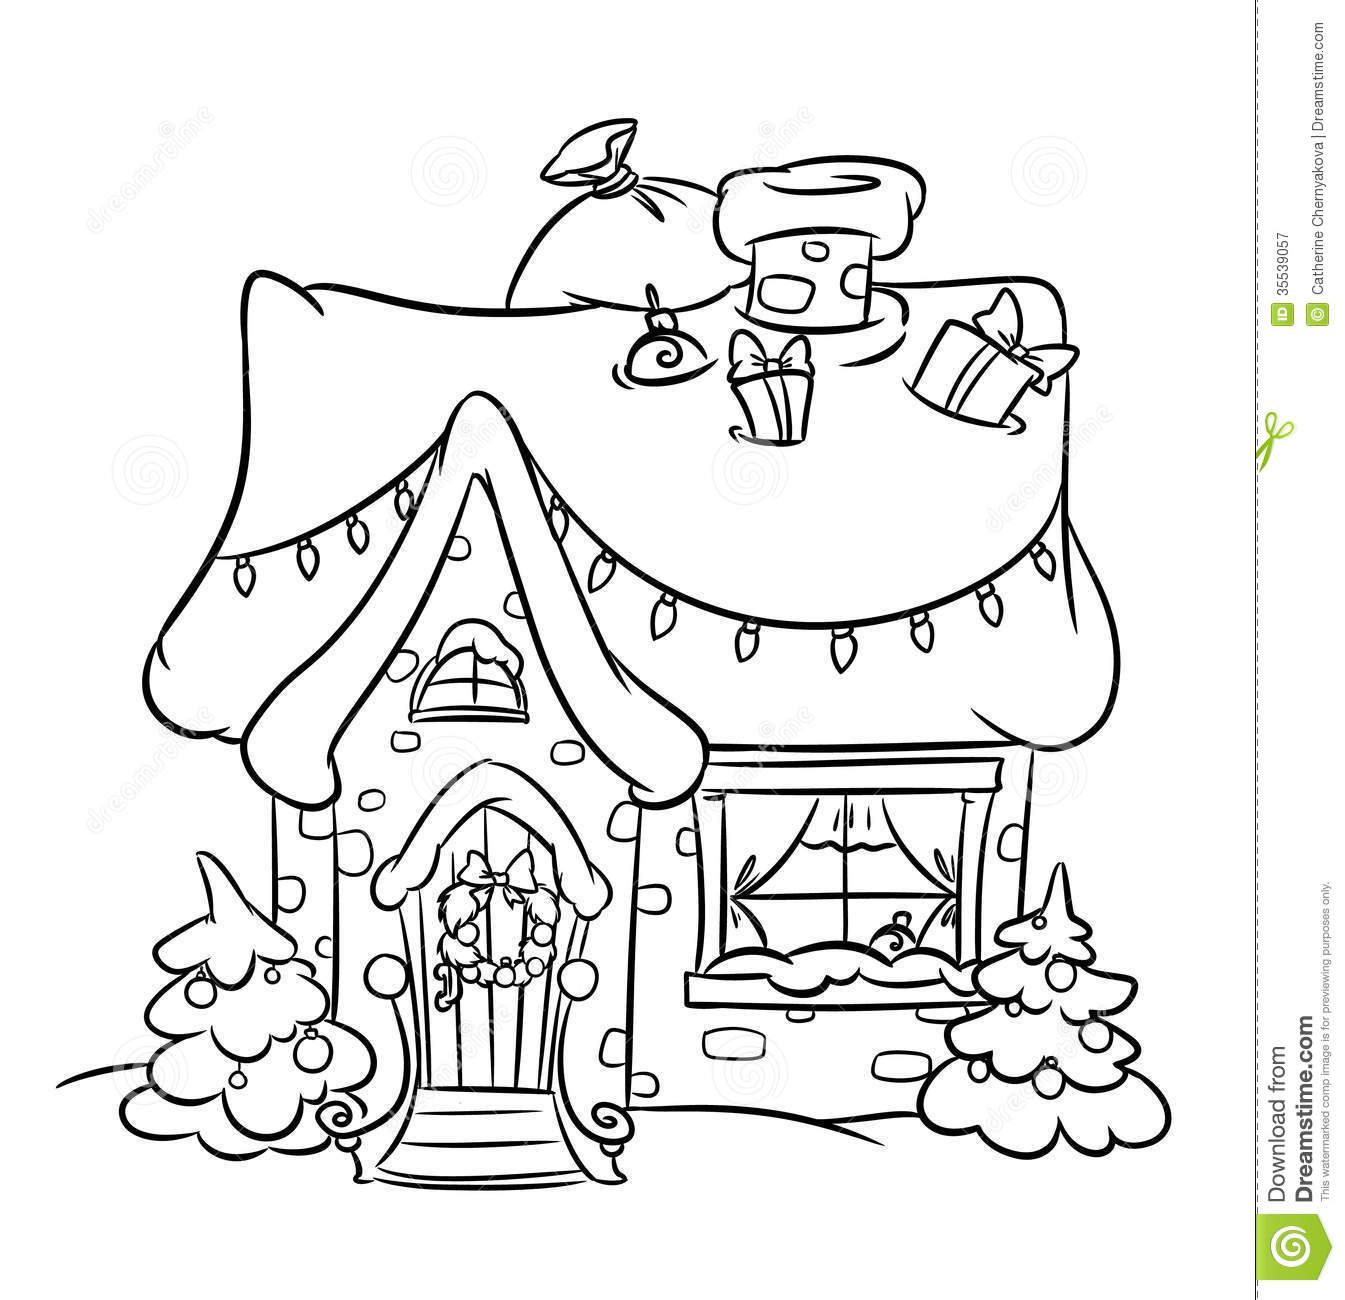 christmas house coloring pages printable - photo#36